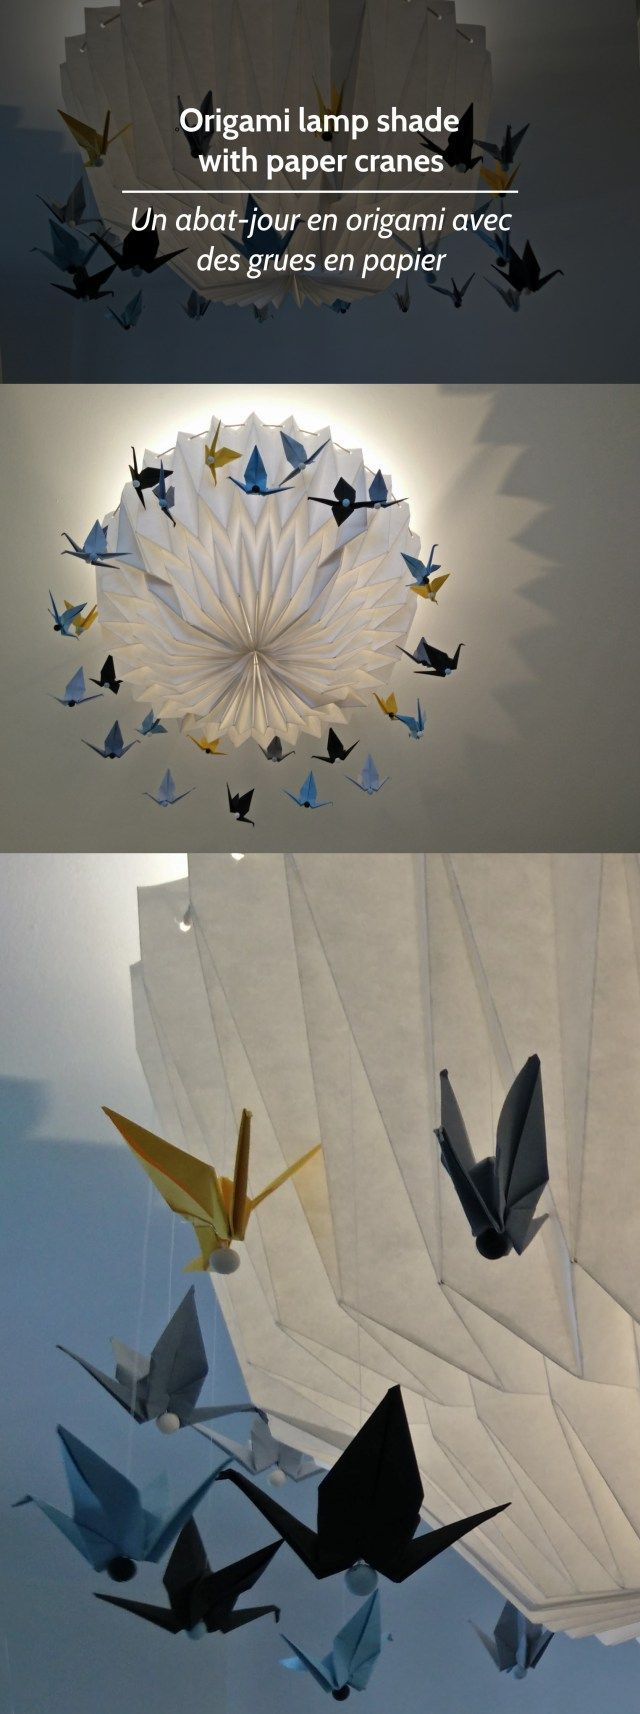 Origami lamp shade with paper cranes